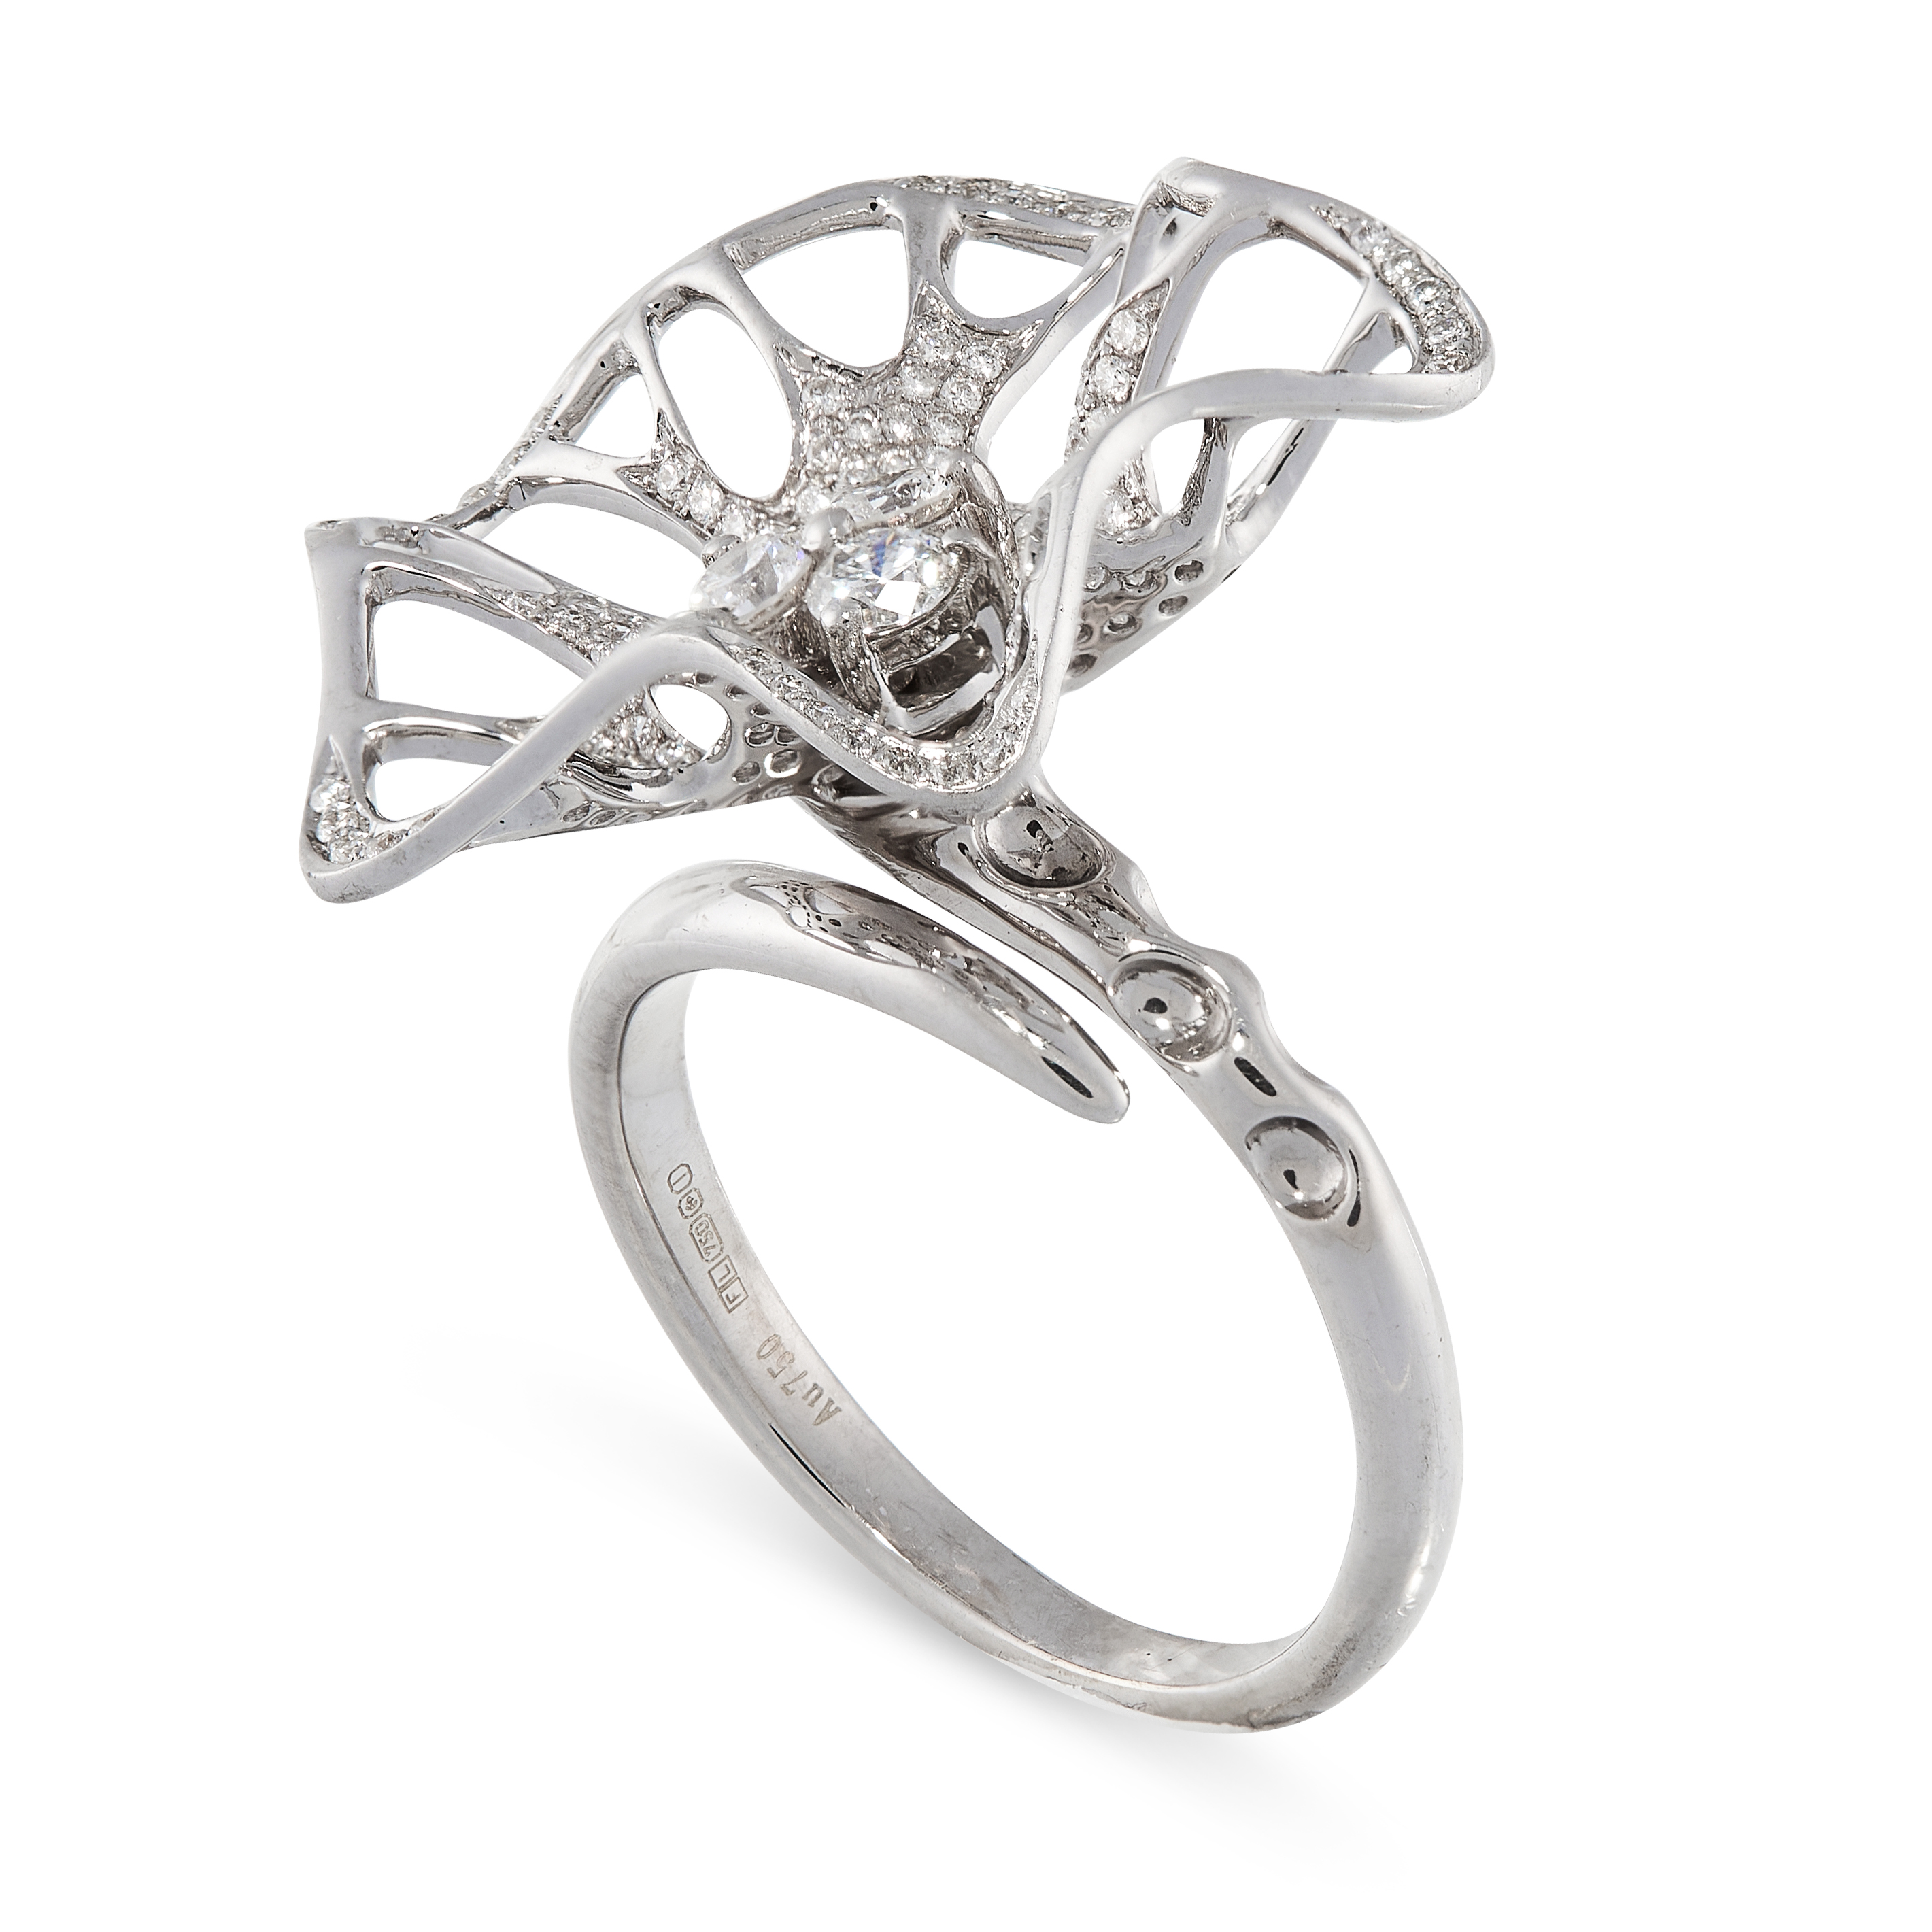 A DIAMOND RING in 18ct white gold, designed as an abstract flower, set with a central trio of - Image 2 of 2